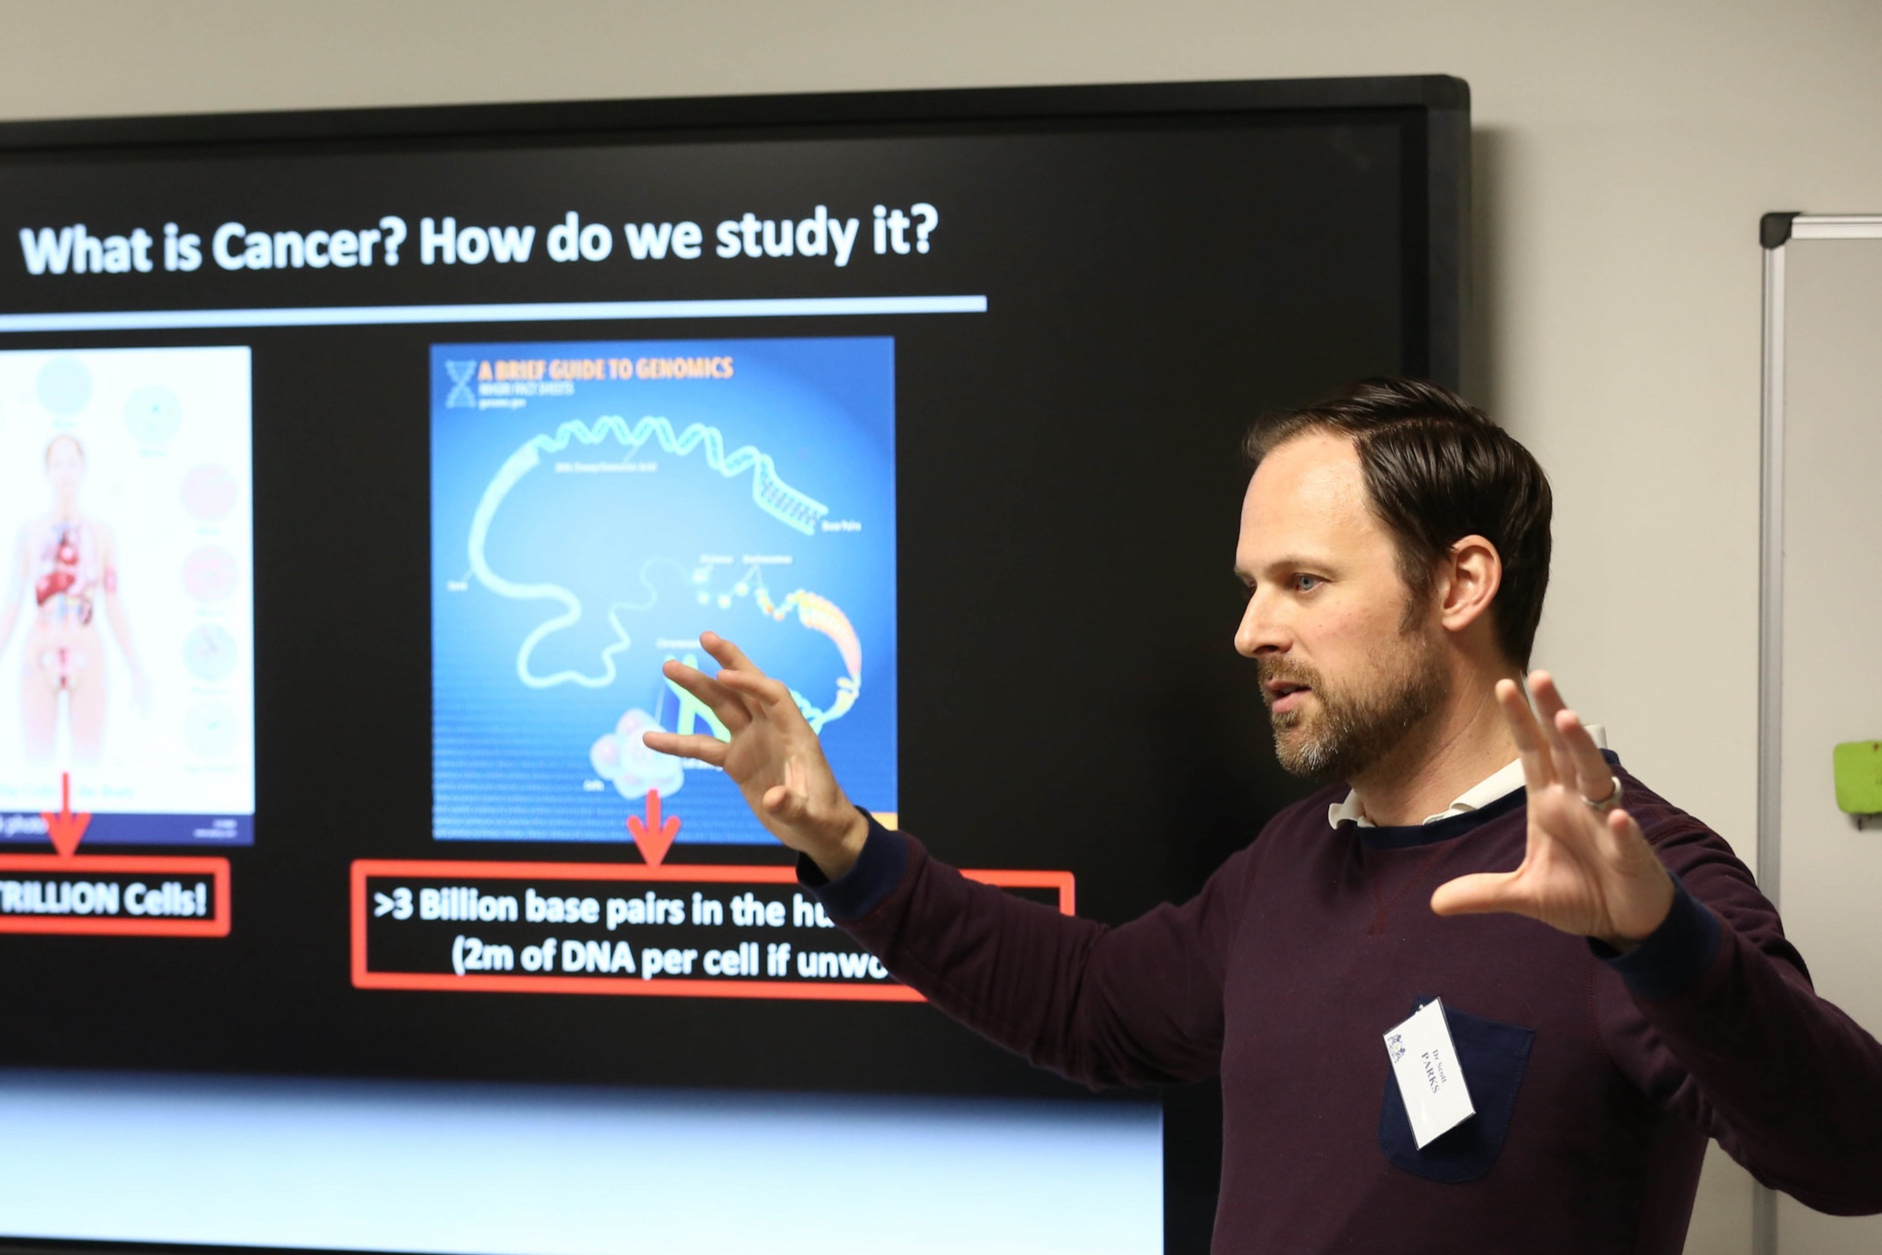 Guest Seminars - Increase engagement with a dynamic scientific, research and education seminar